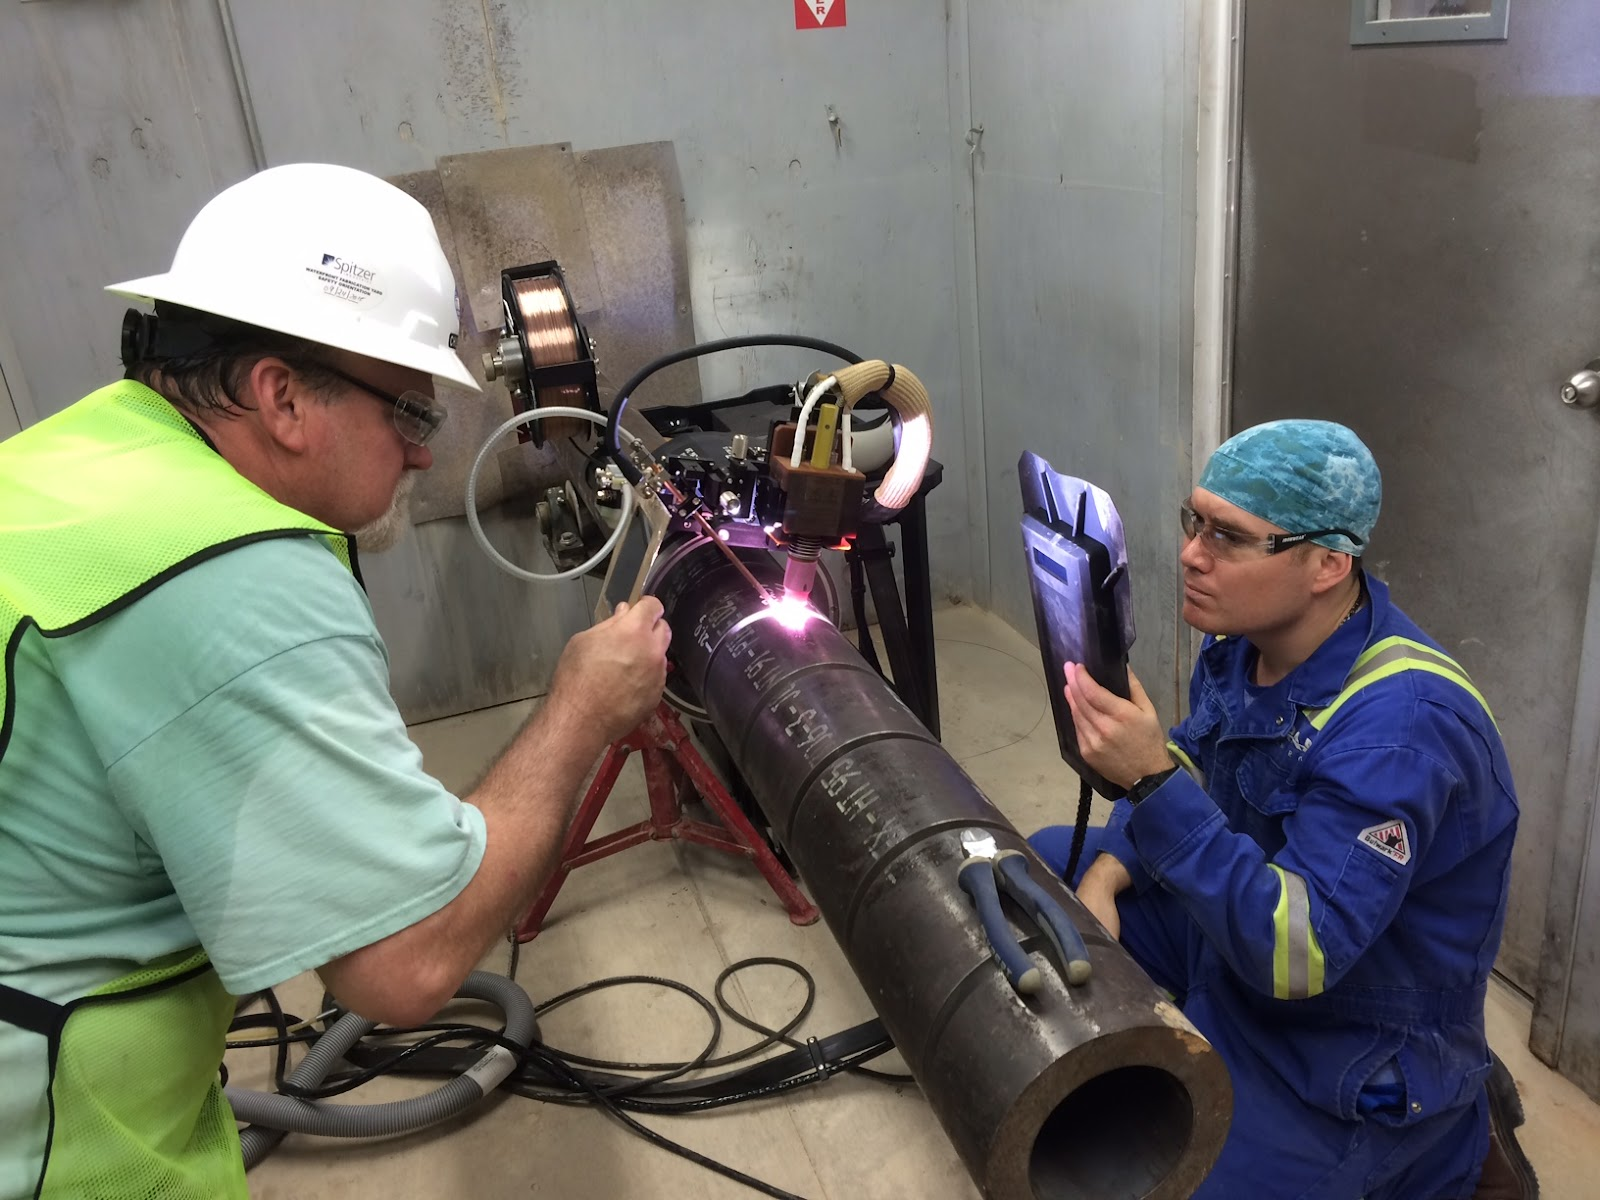 Orbital welding create quality welds whether pipe welding downhill or uphill.